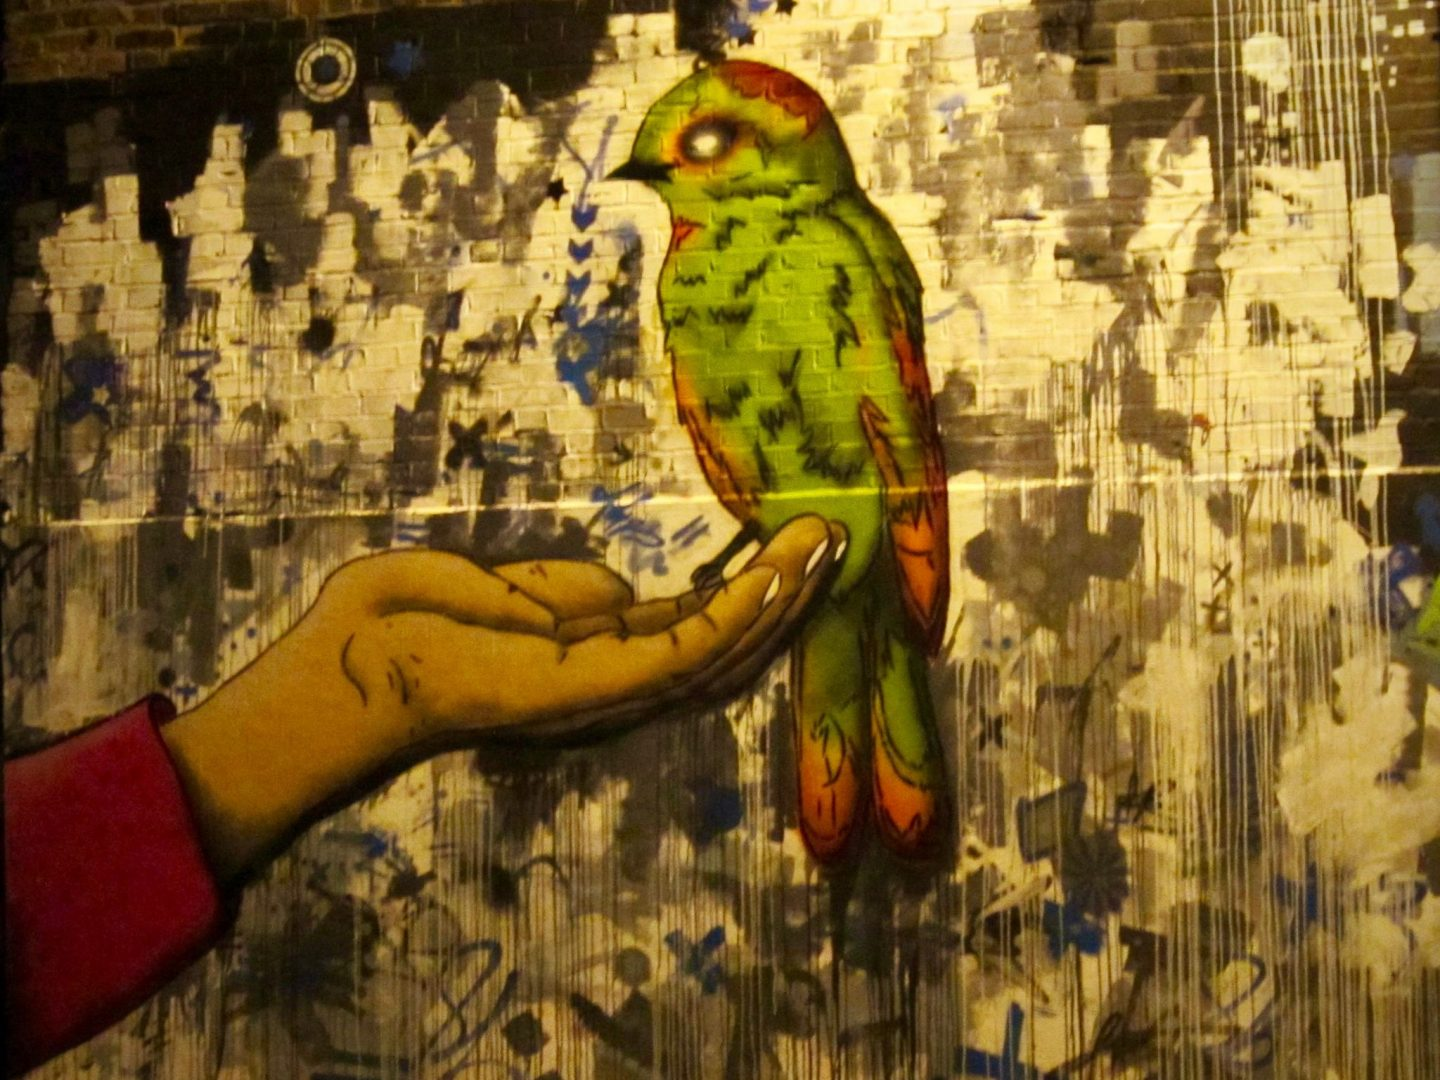 London Street Art | London's Art & Artifacts | The Spectacular Adventurer